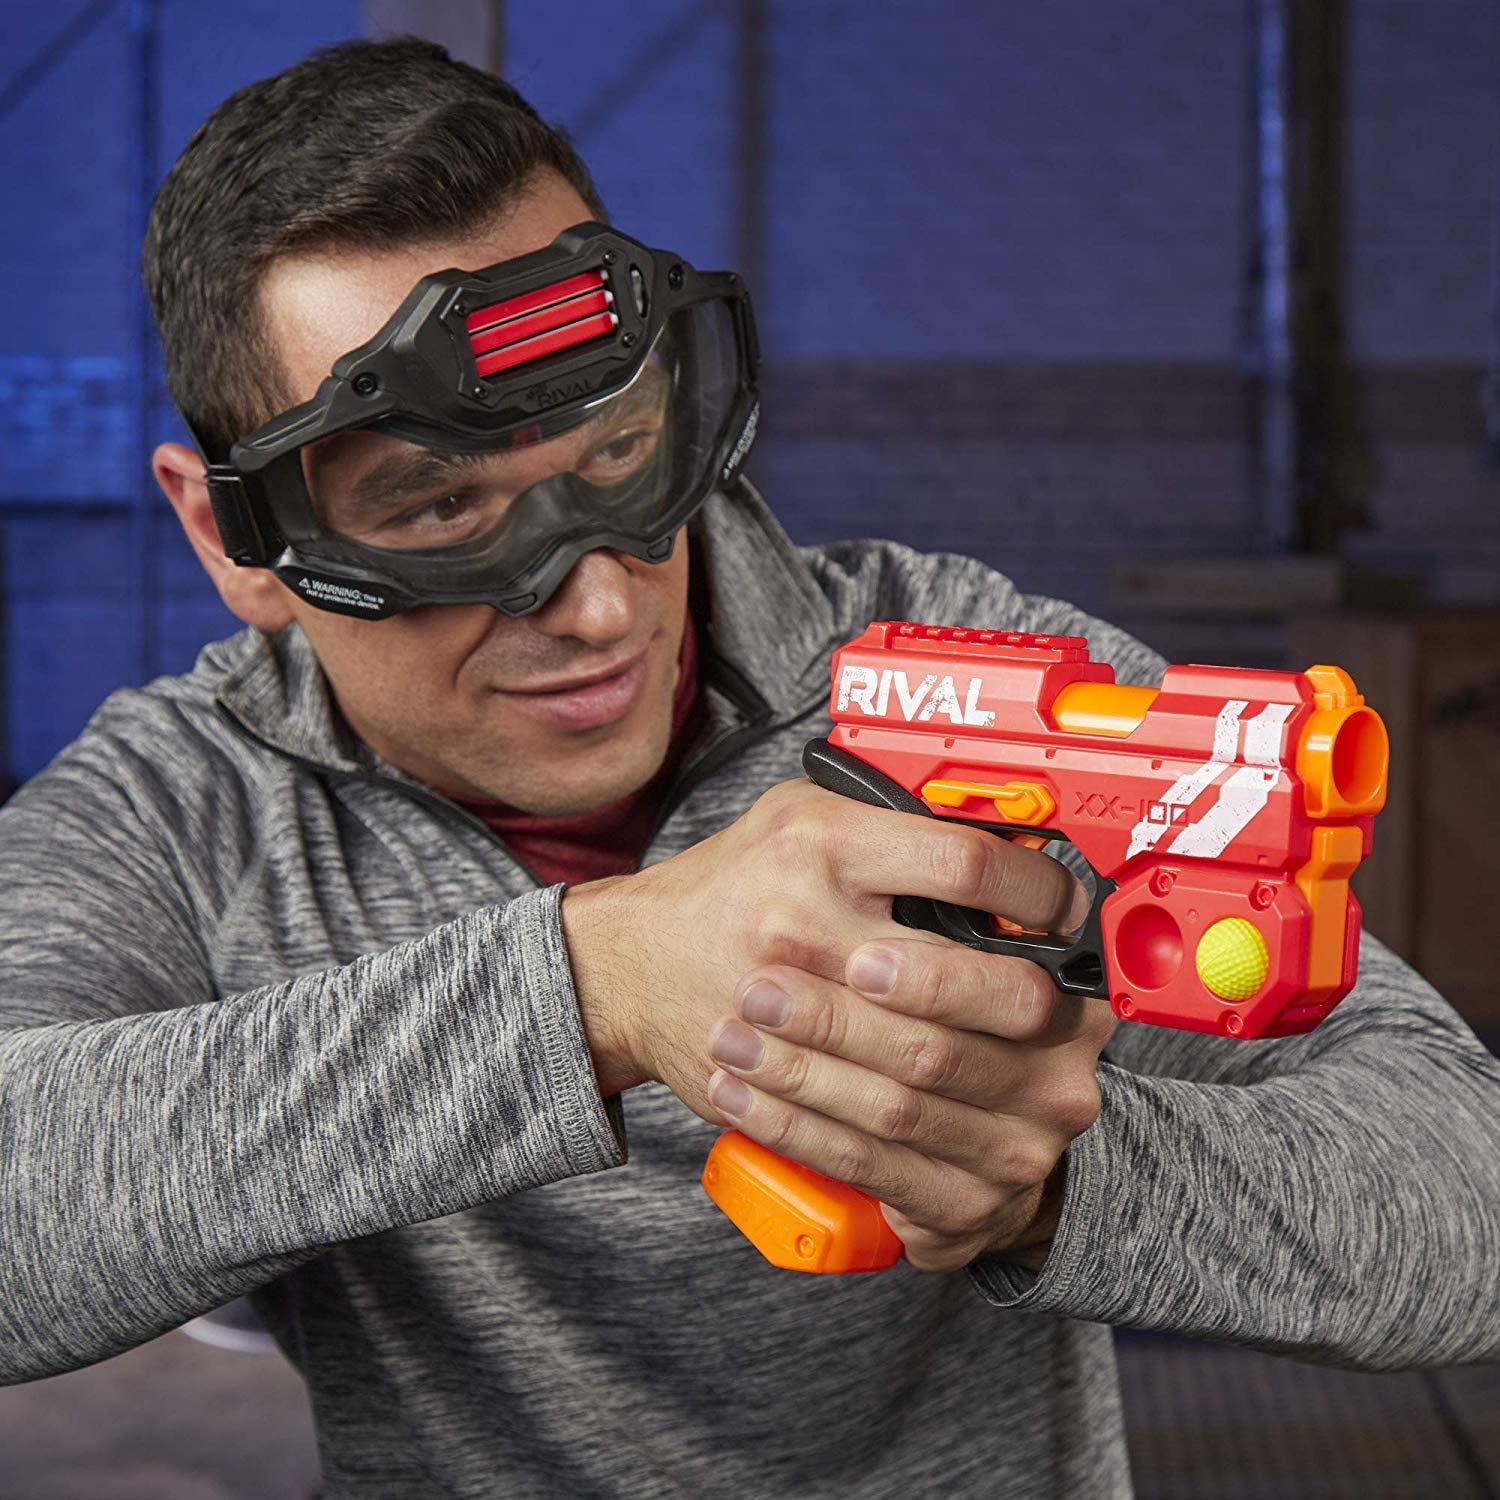 90 FPS Velocity Breech Load Blue and Red Bundle Includes 2 Official Rival Rounds Per Blaster Round Storage NERF Rival Knockout XX-100 Blaster